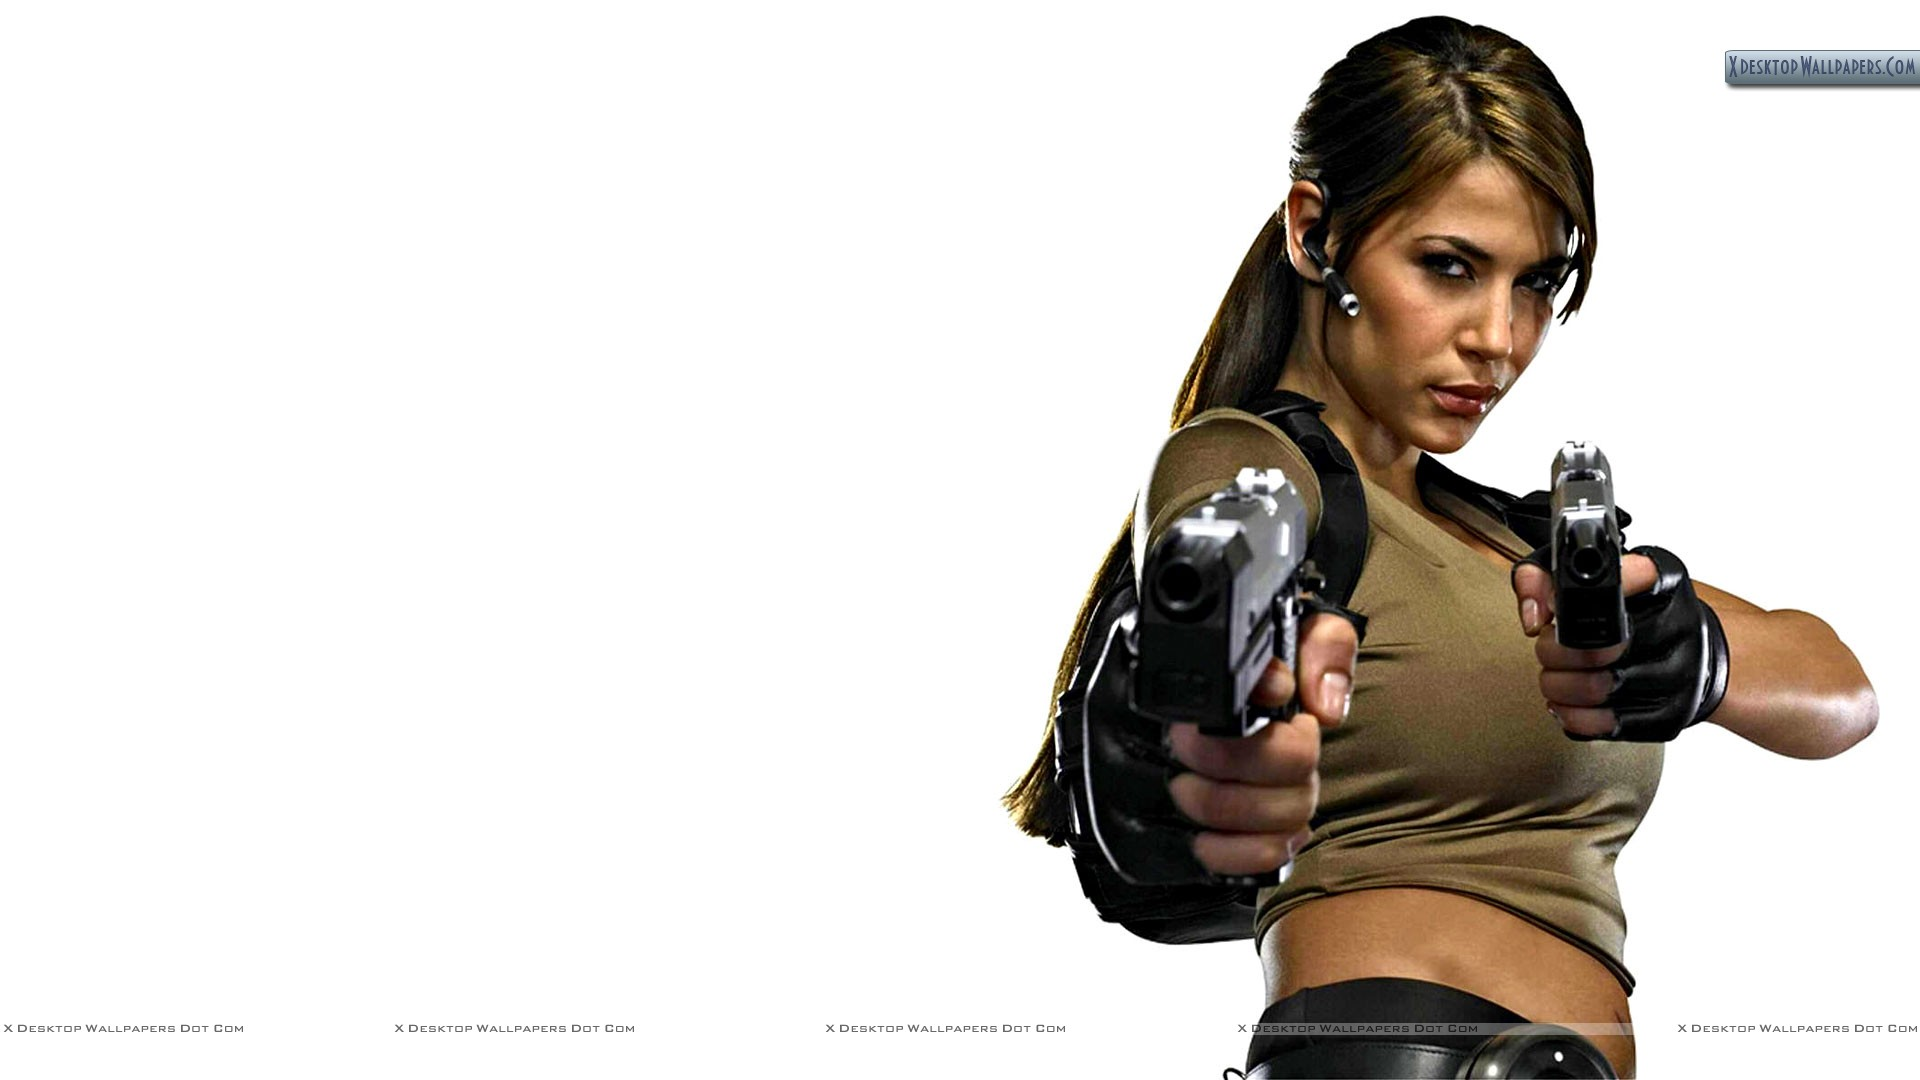 Karima Adebibe in Green Top Holding Guns in Hand Wallpaper: xdesktopwallpapers.com/big-boobs-karima-adebibe-holding-guns-in...